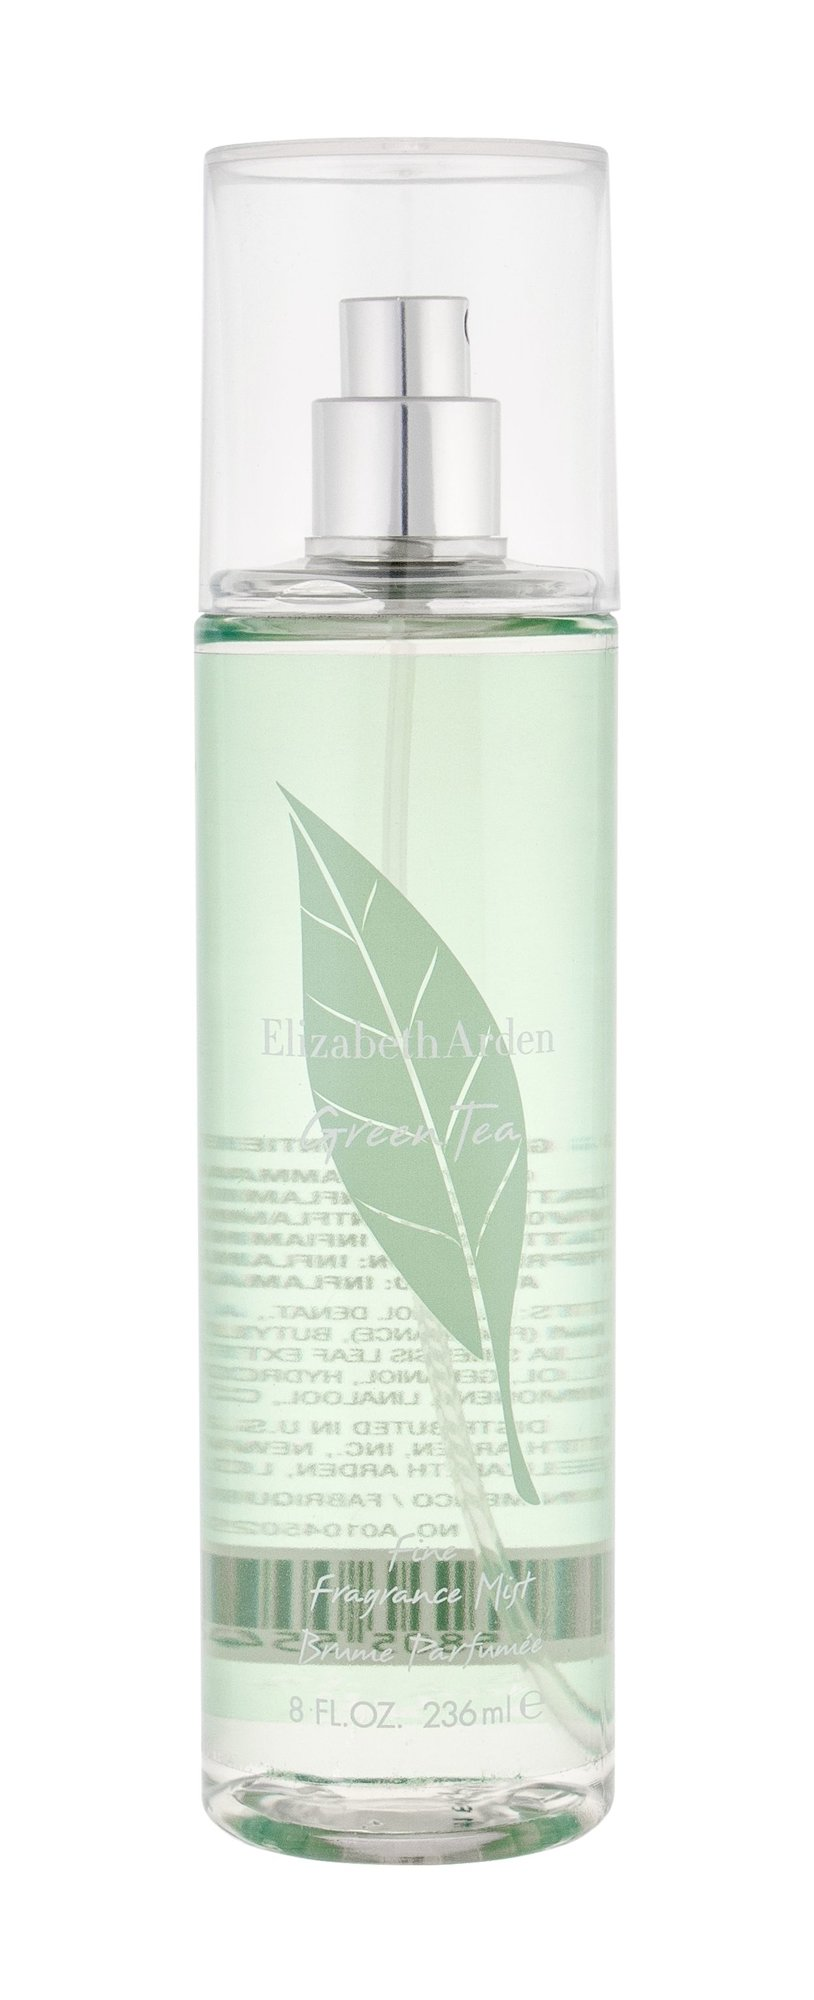 Elizabeth Arden Green Tea Body Spray 236ml